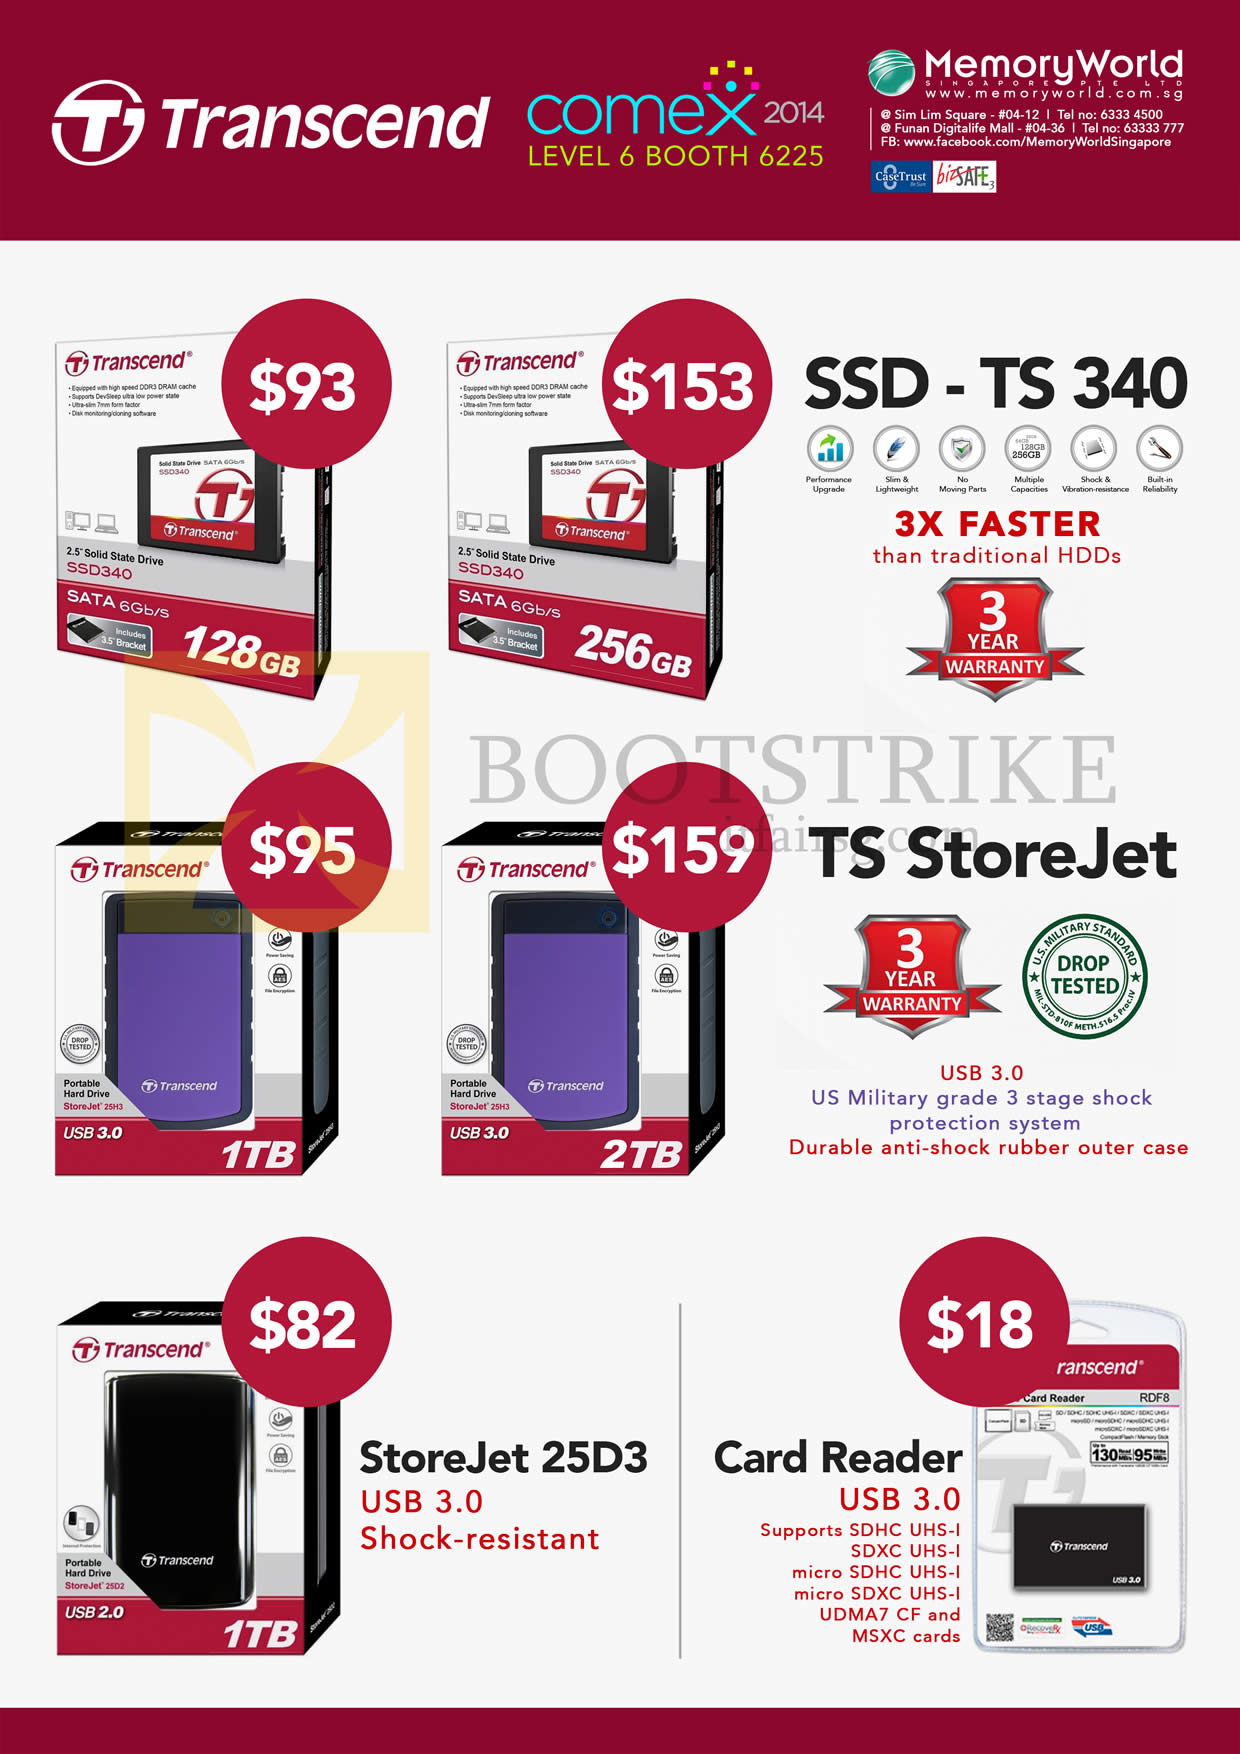 COMEX 2014 price list image brochure of Memory World Transcend SSD TS 340, External Storage TS StoreJet 1TB 2TB, 25D3, Card Reader